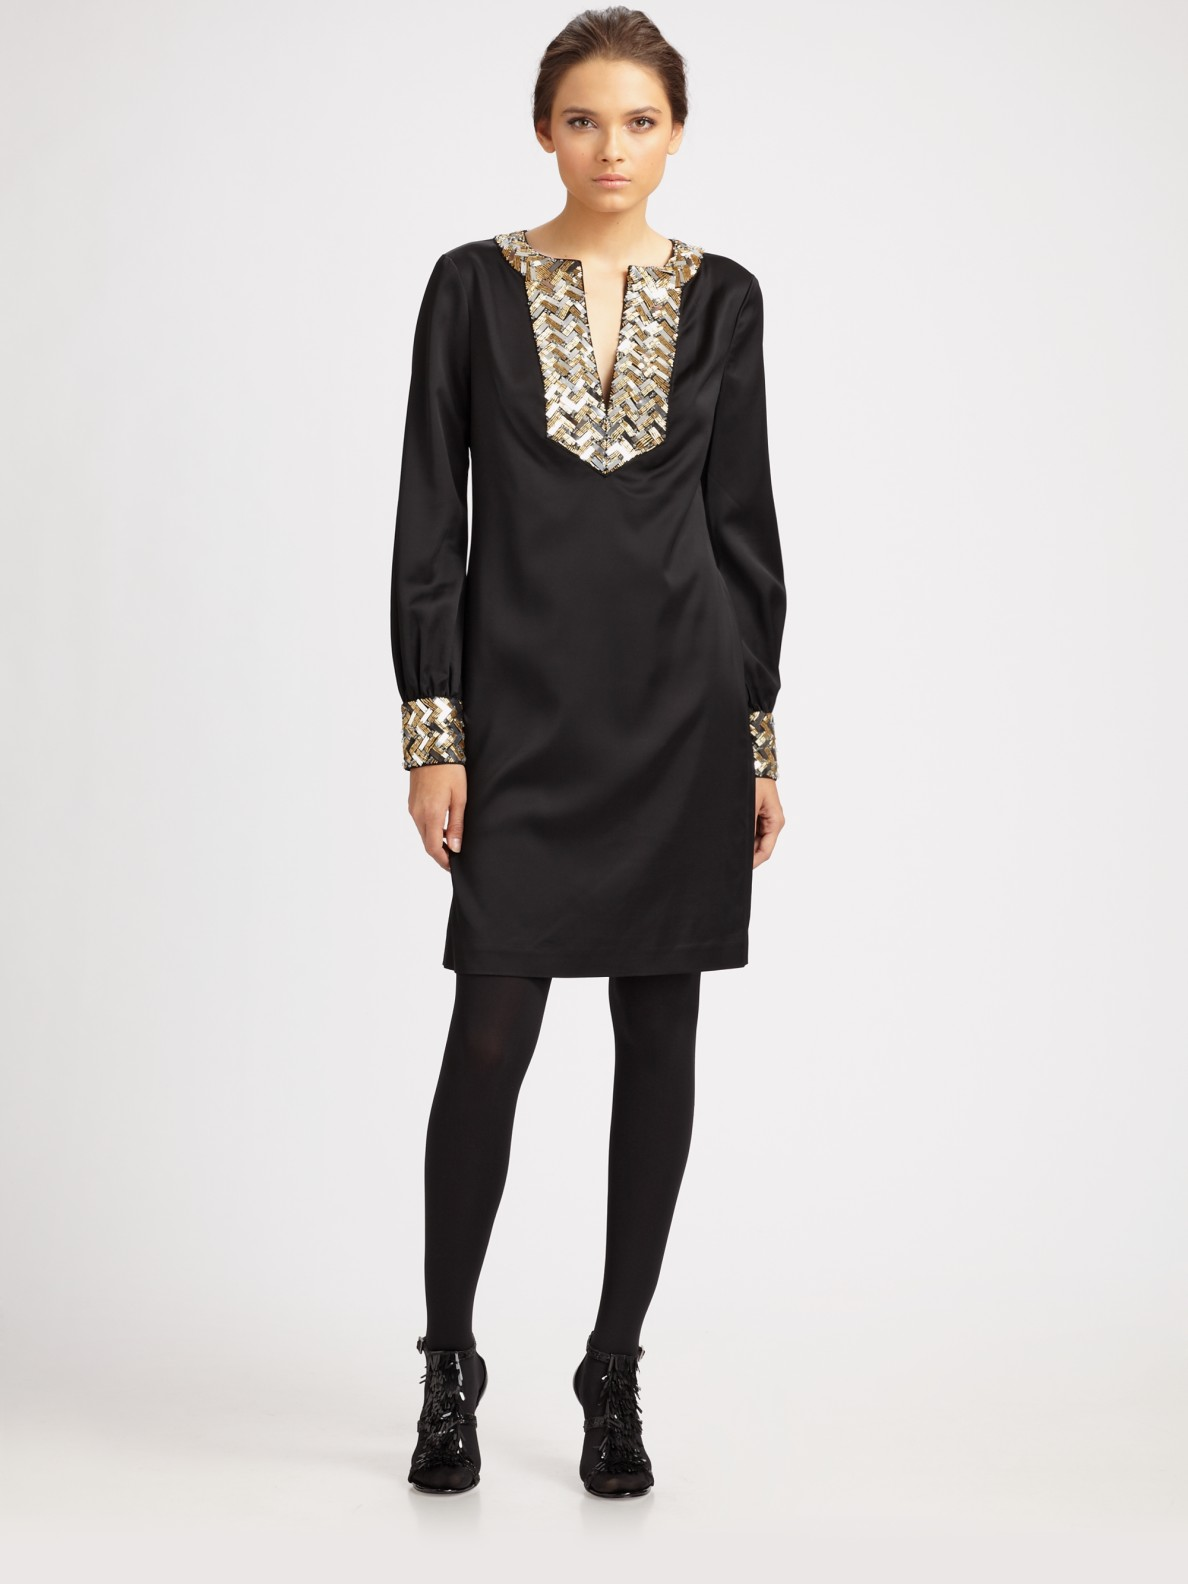 Tory Burch Sequined Tunic Dress In Black Lyst